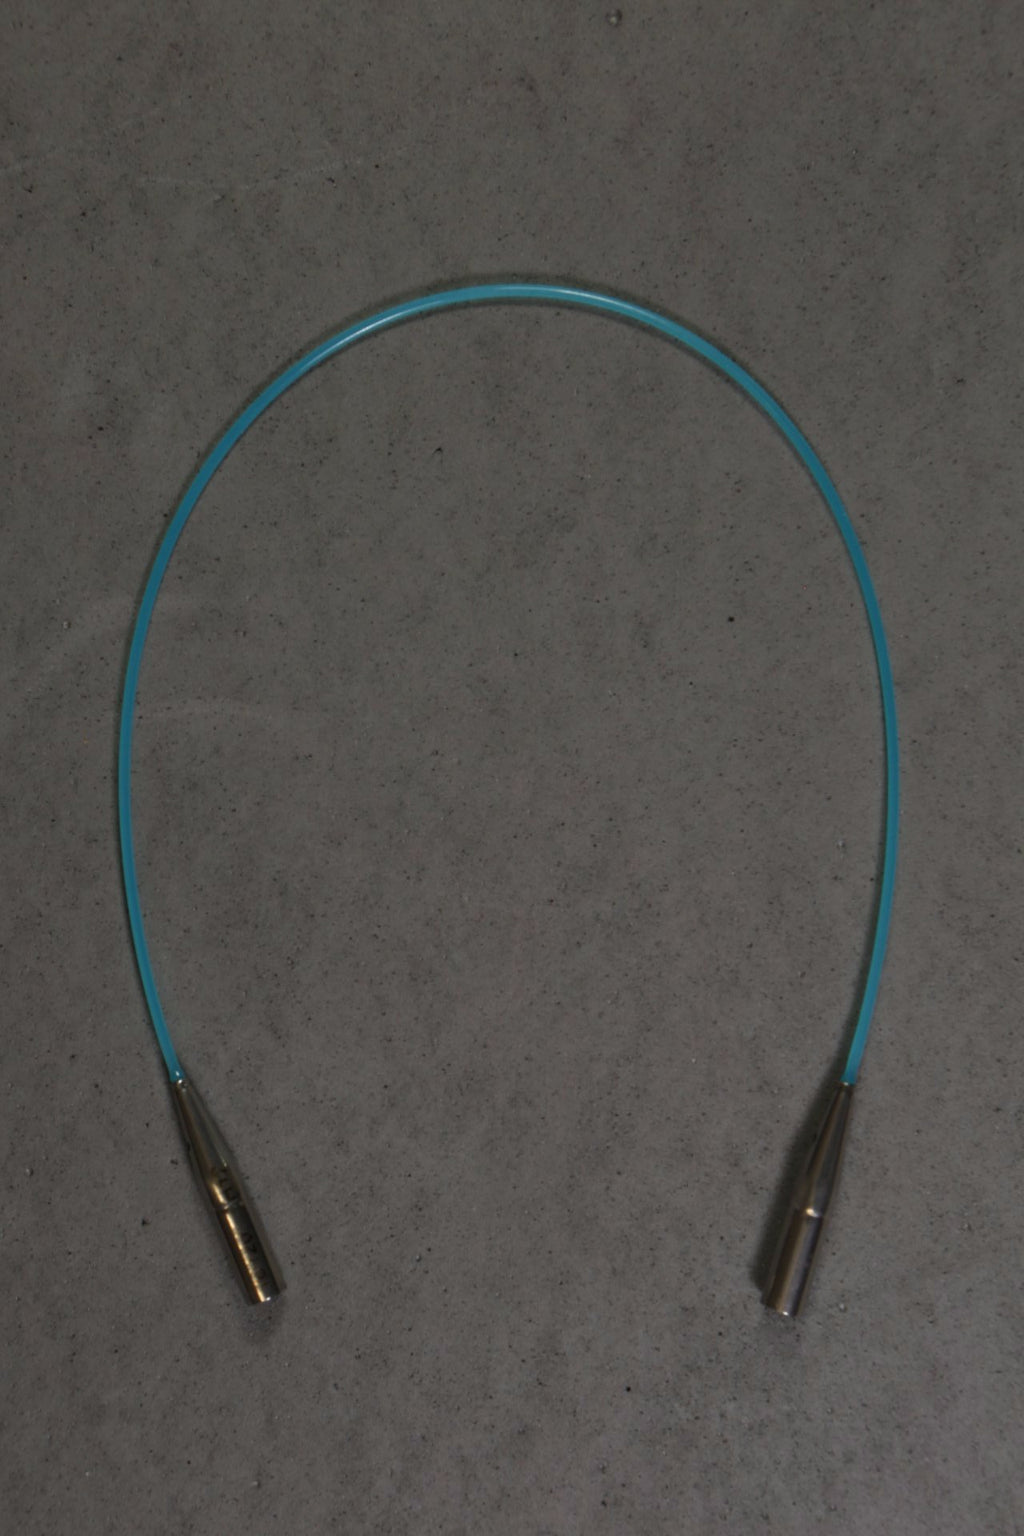 HiyaHiya Interchangeable Cable with LifeLine Holes